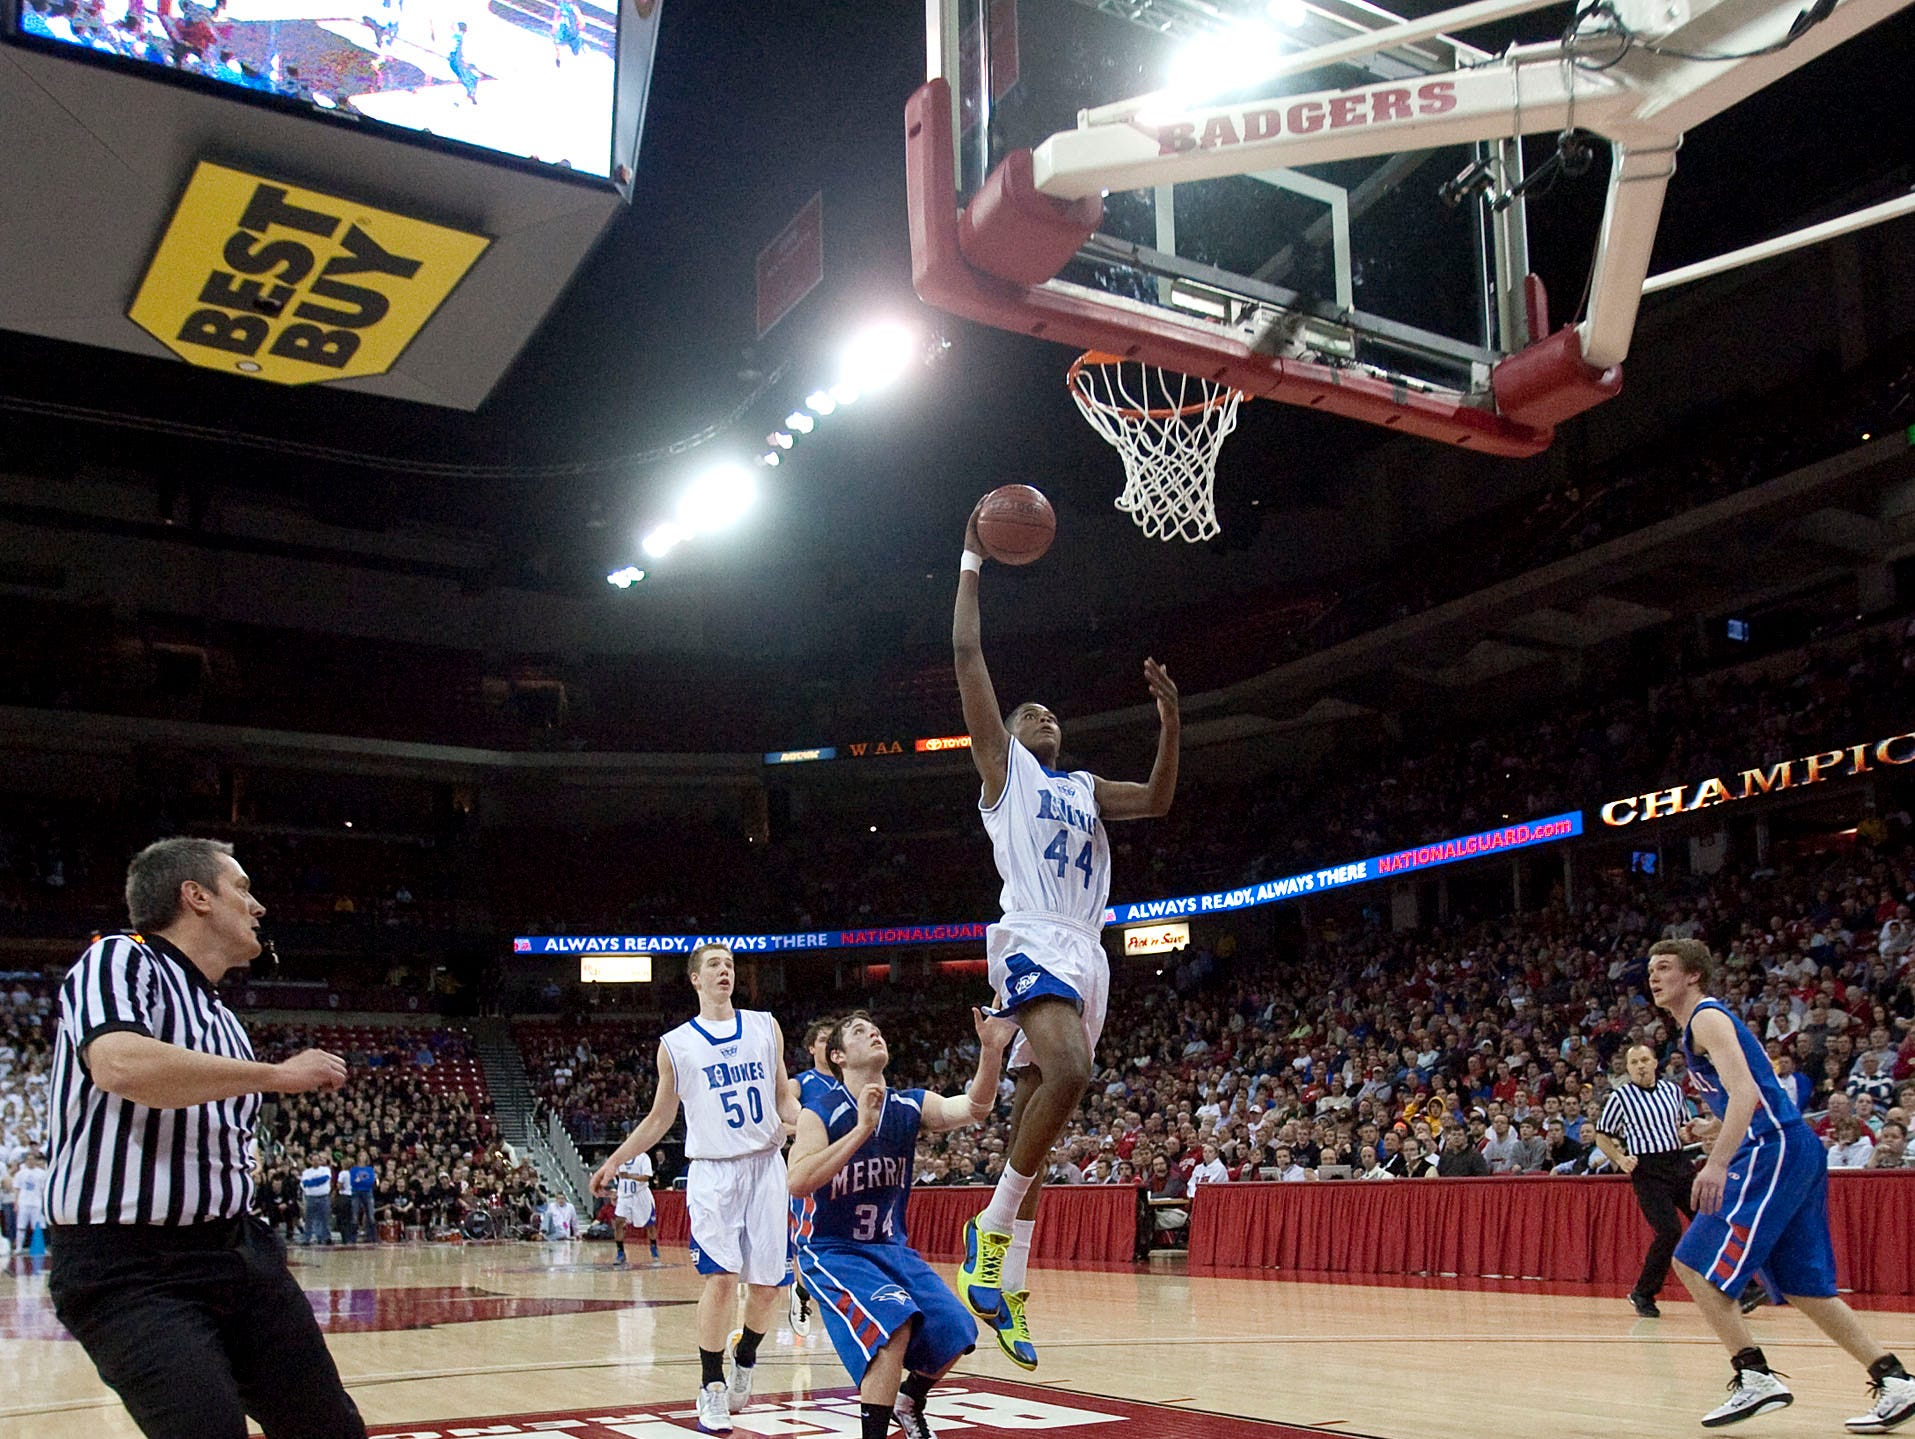 Whitefish Bay's Ron Patten goes up for a slam dunk past Merrill's Kyle Andreska late in the fourth period of the teams W.I.A.A. Boys State Basketball Tournament Championship game in the Kohl Center Saturday, March 19, 2011, in Madison, Wis.  Whitefish Bay won the game 65-49.